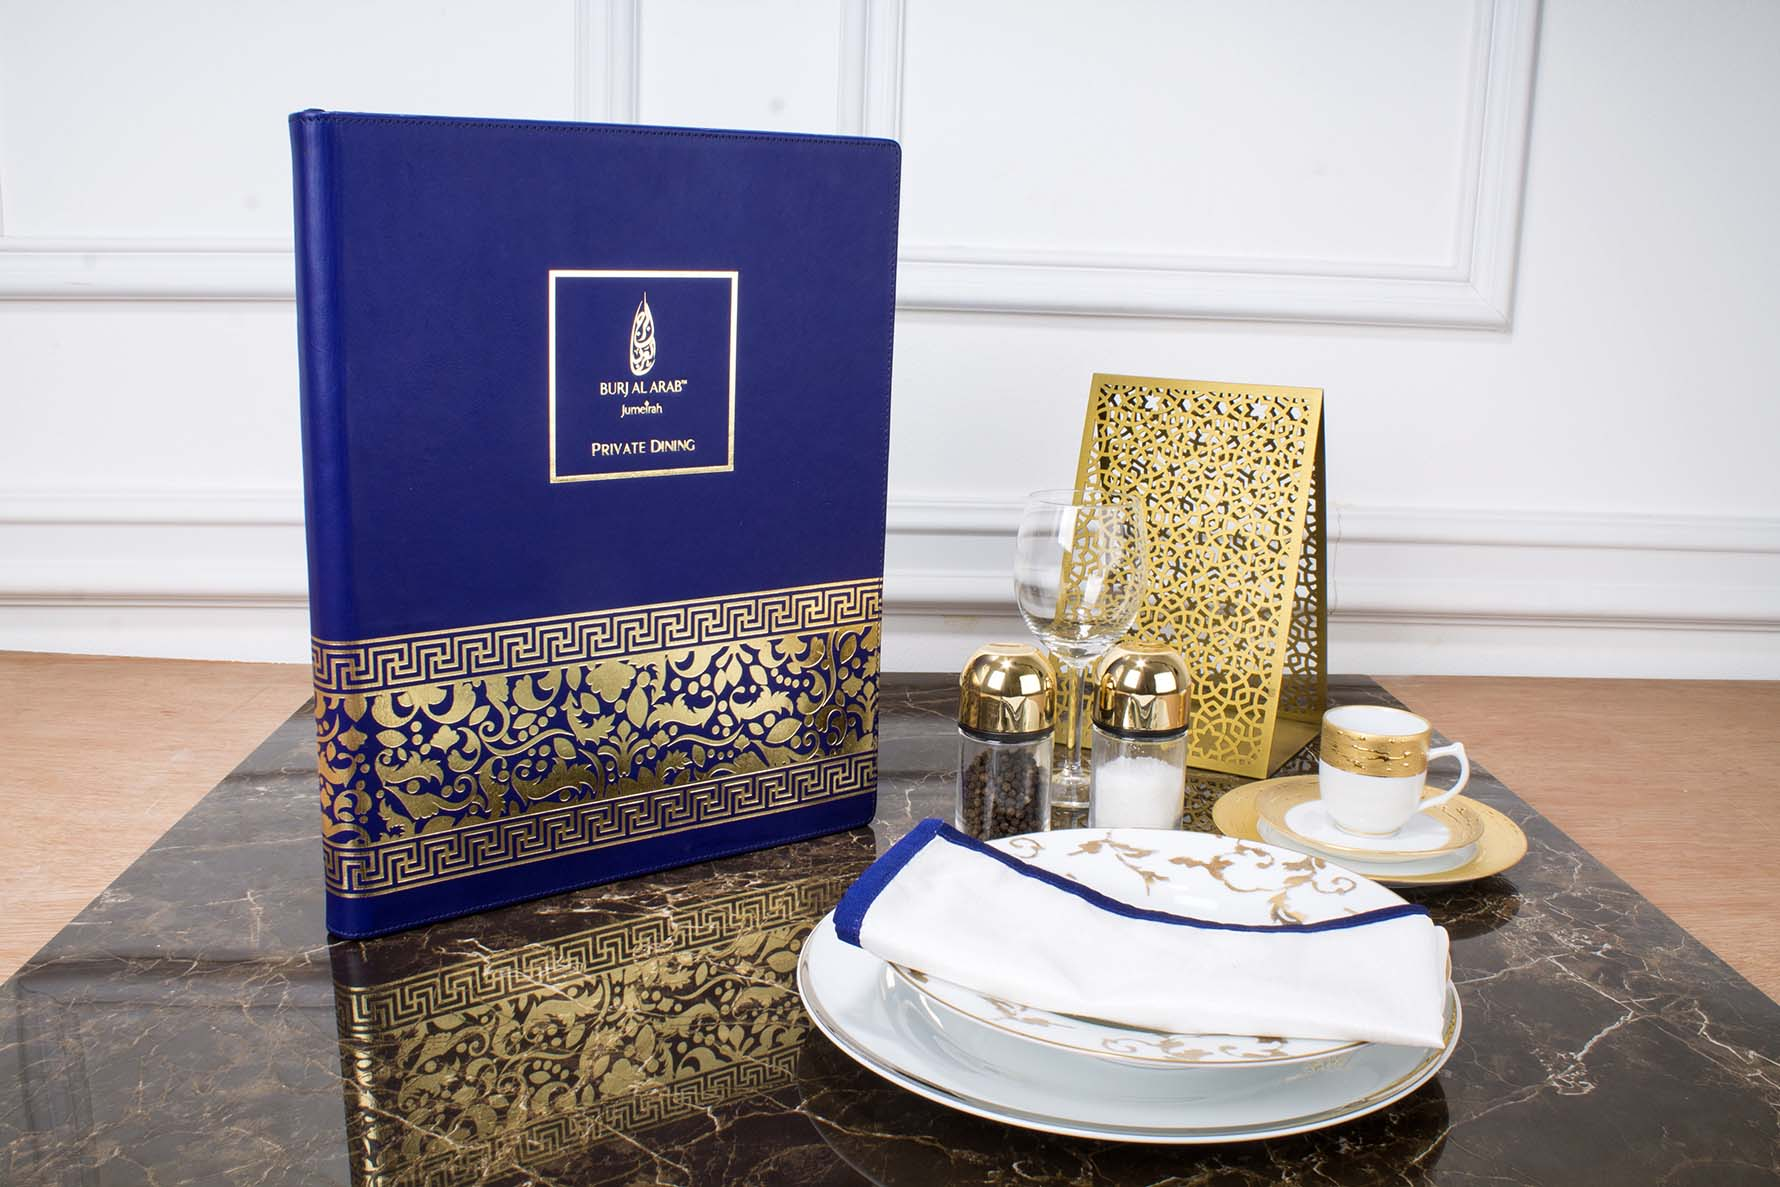 Burj Al Arab Private Dining Menu